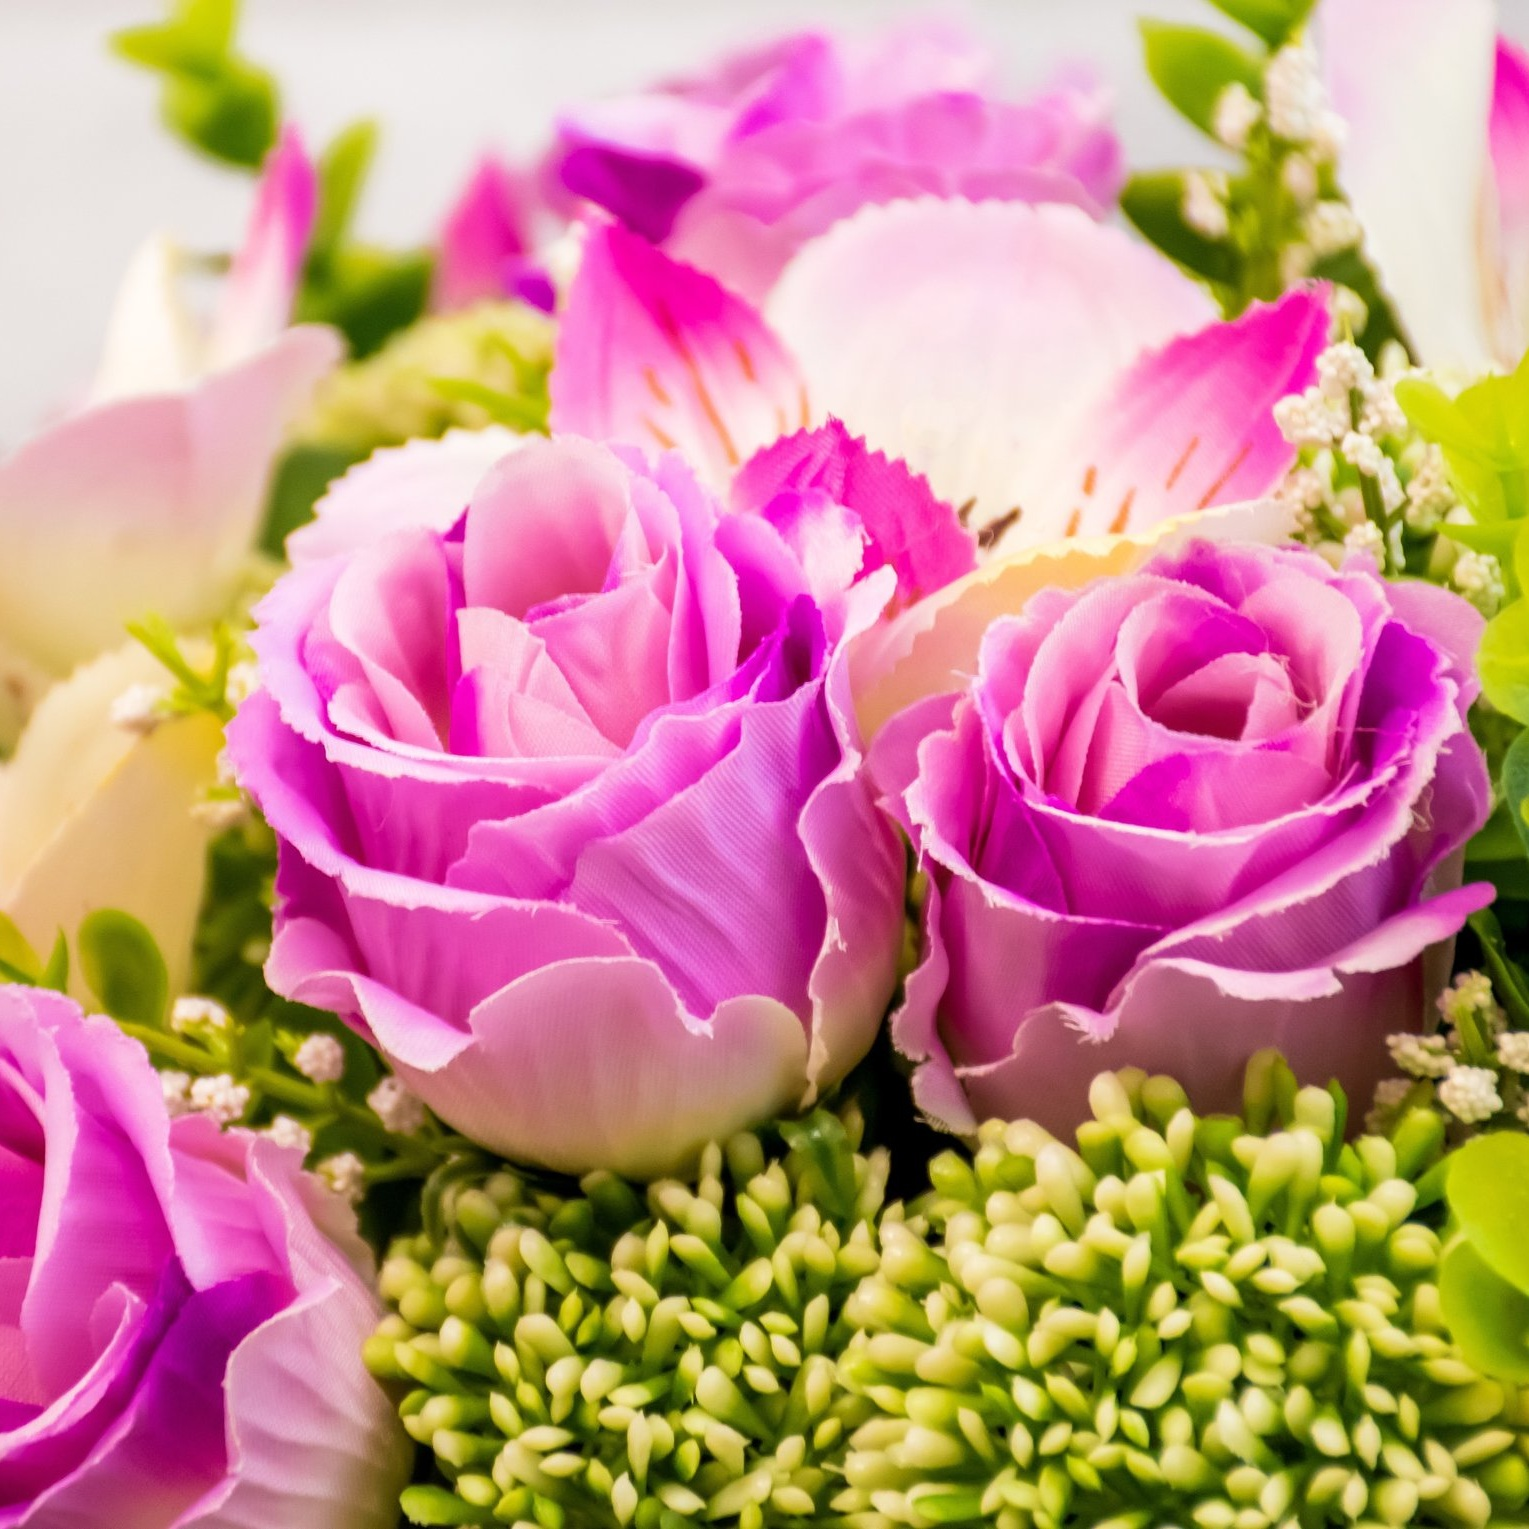 bloom-blossom-bouquet-135224.jpg